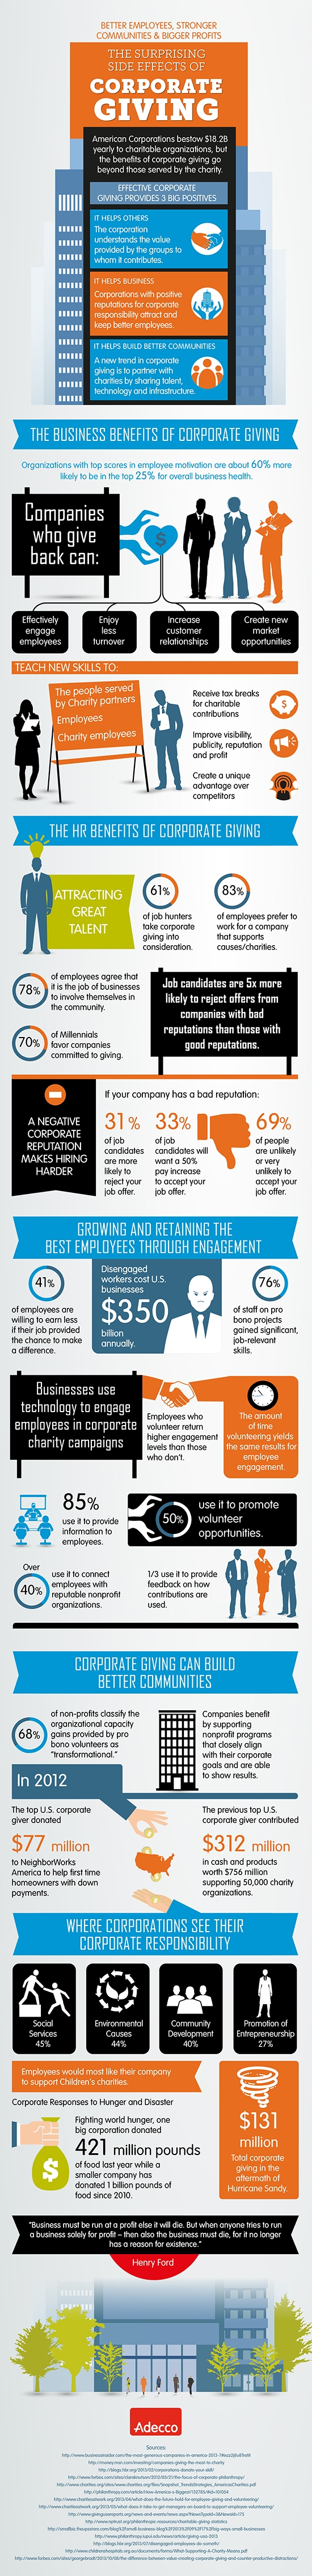 Infographic on salary trends in industrial, STEM, and creative and marketing.